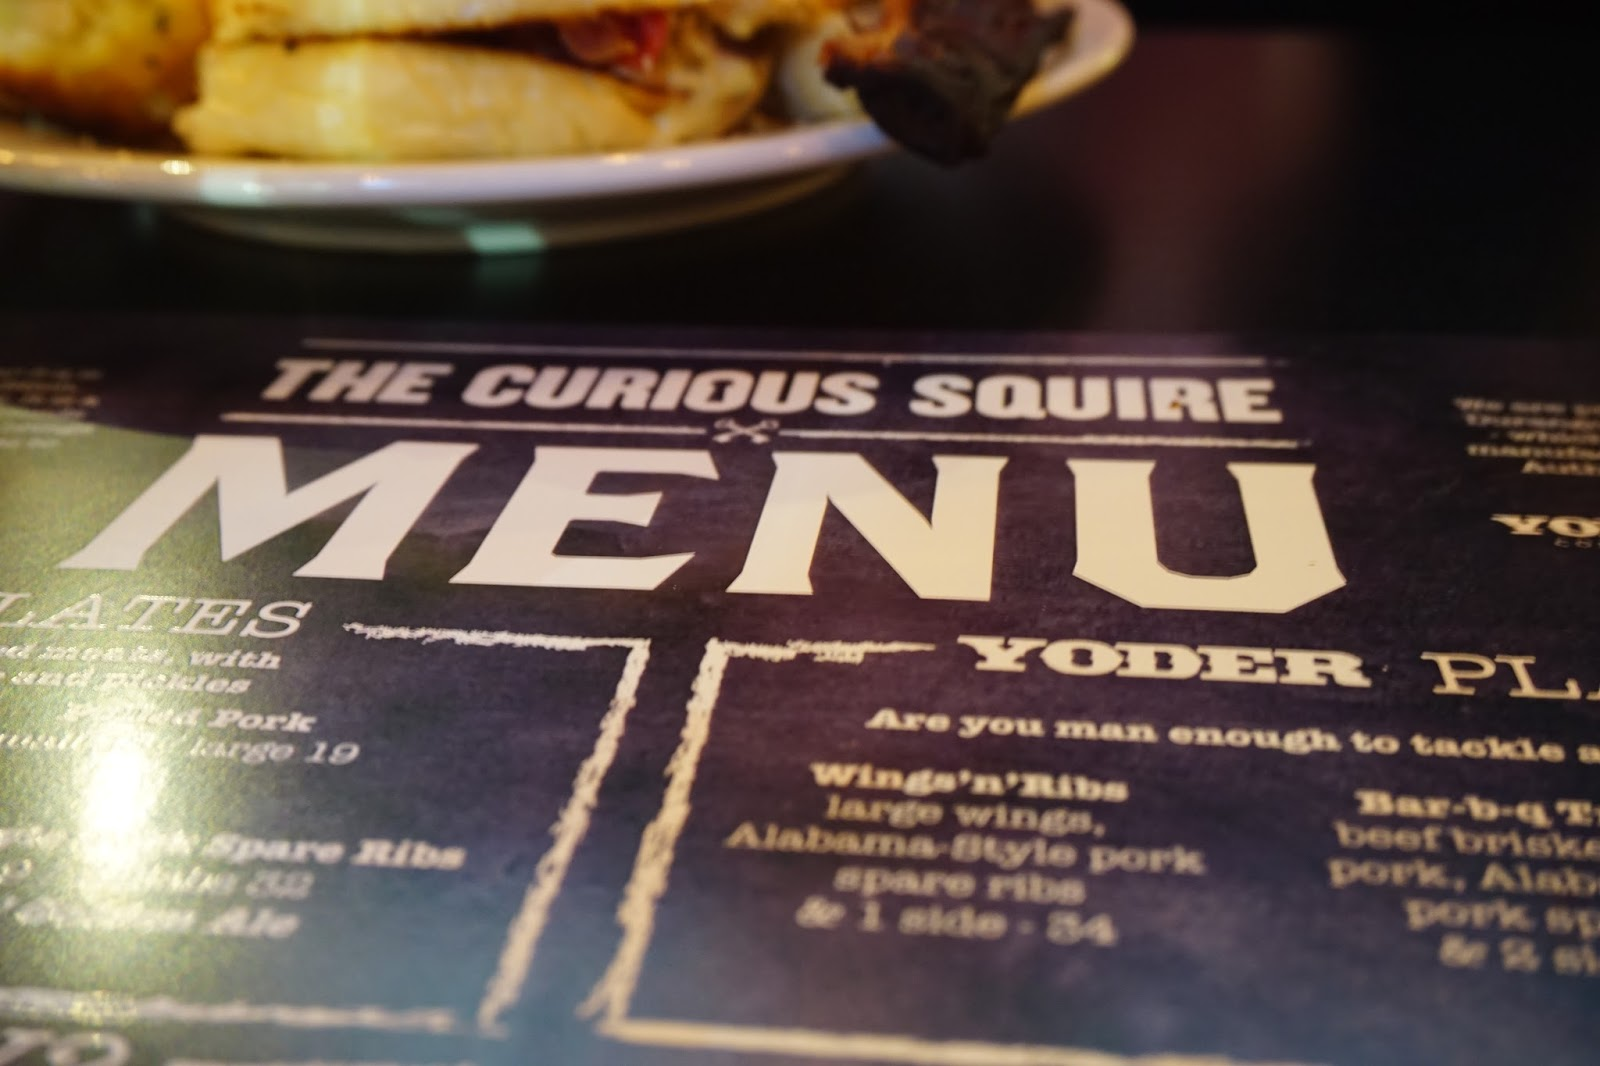 The menu at The Curious Squire, North Adelaide